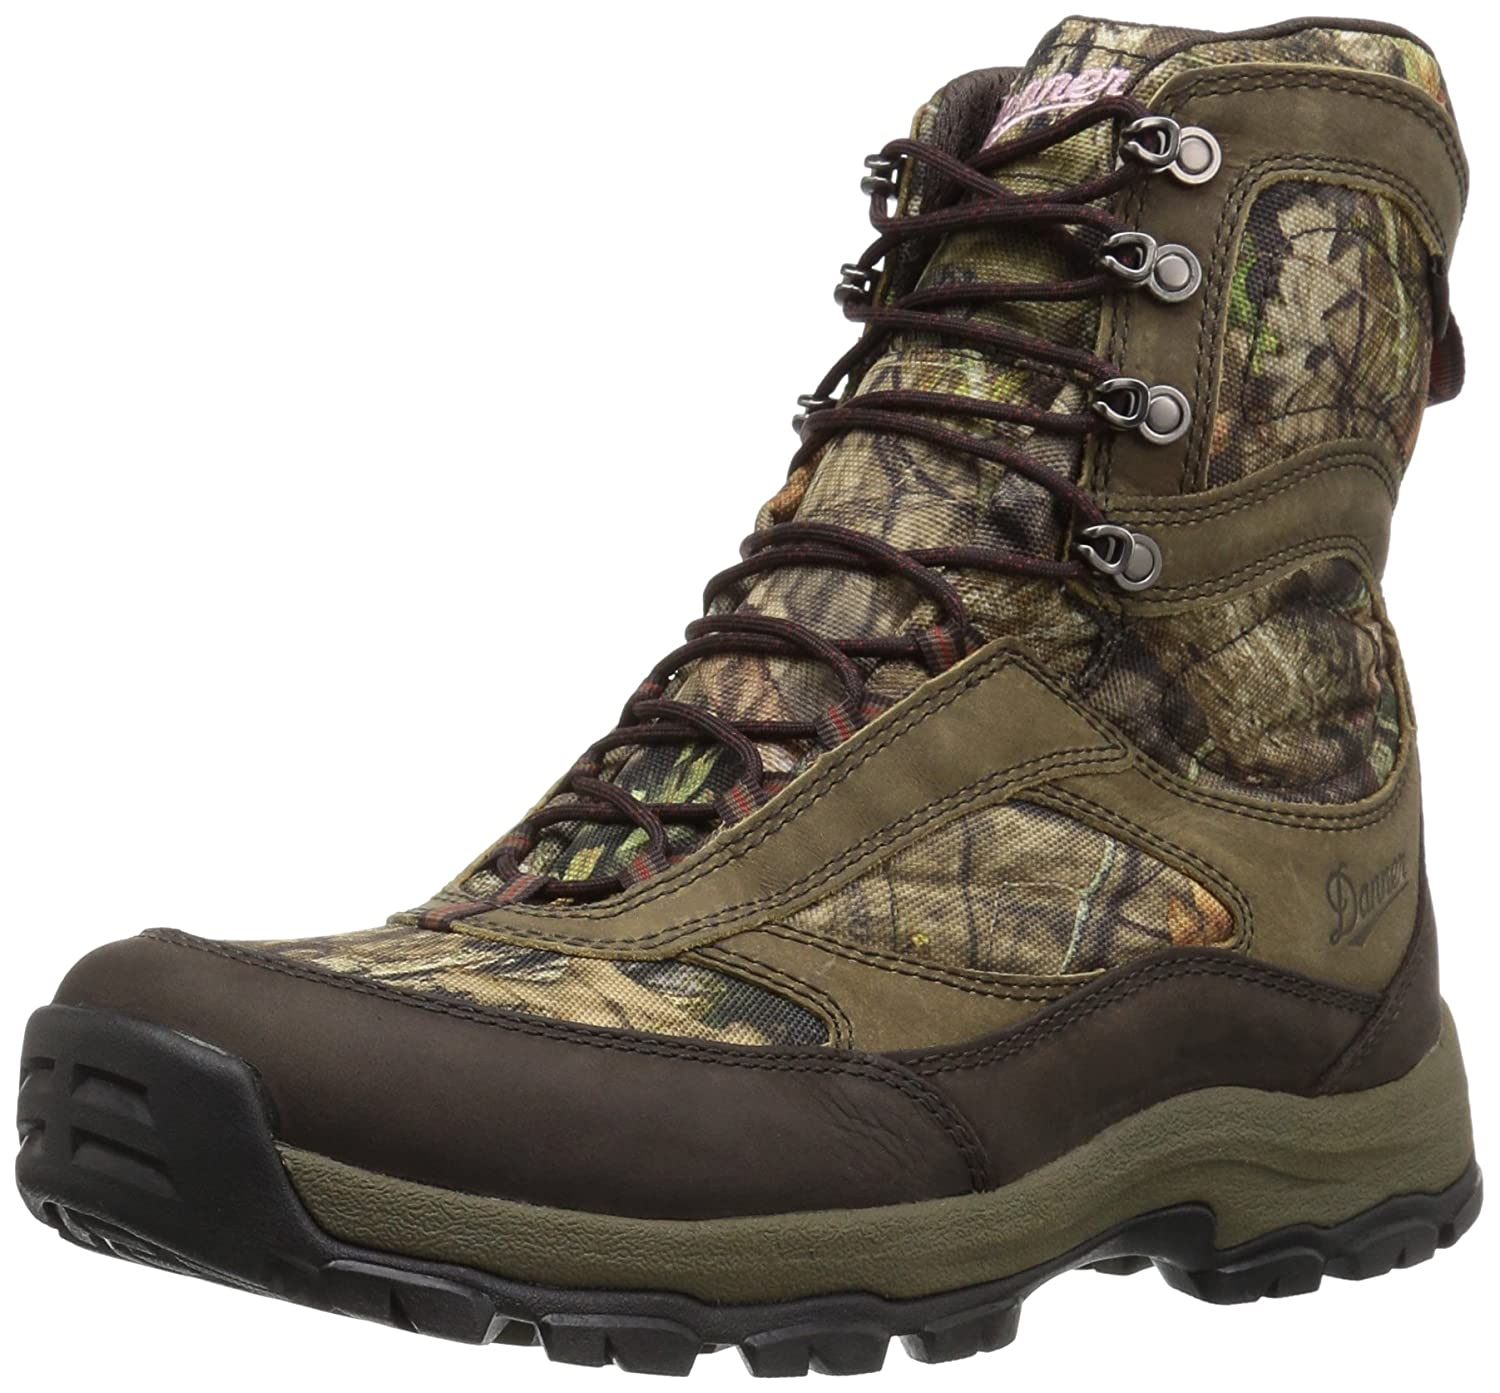 Danner Women's High Ground Hunting Shoes B01MTBBRJ4 6.5 B(M) US|Mossy Oak Break Up Country